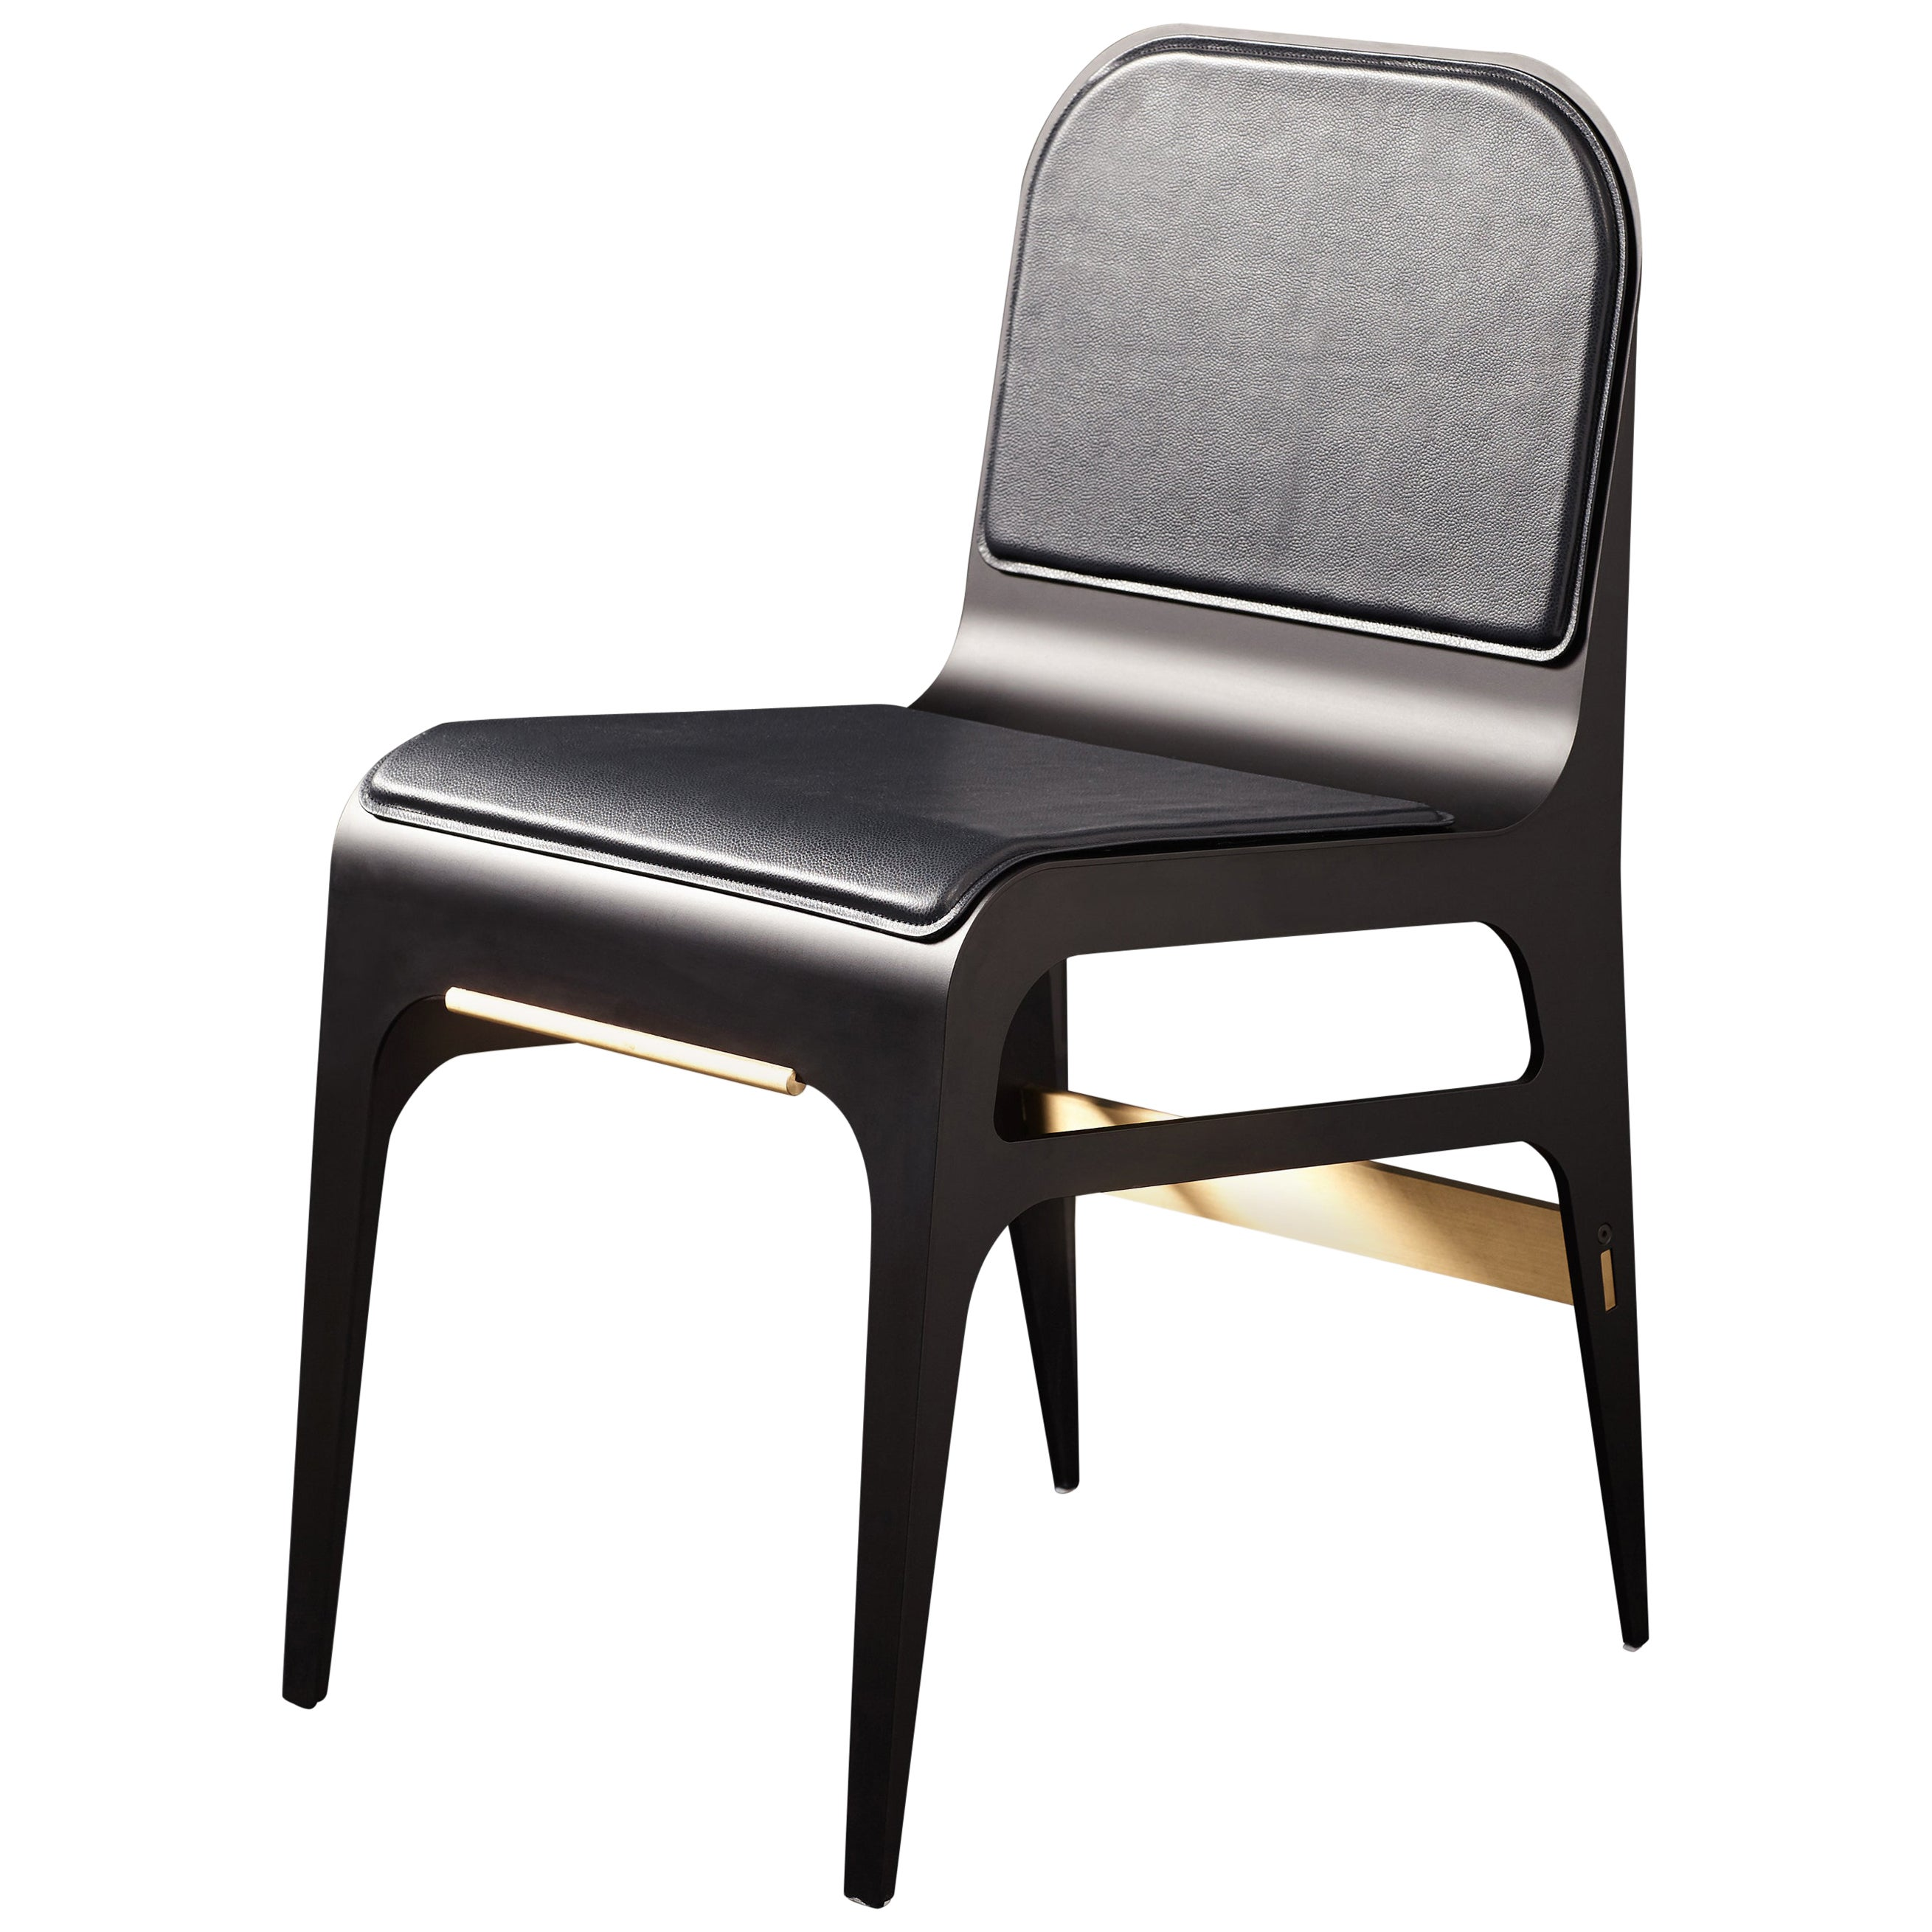 Bardot Dining Chair with Leather Seat and Satin Brass Hardware by Gabriel Scott